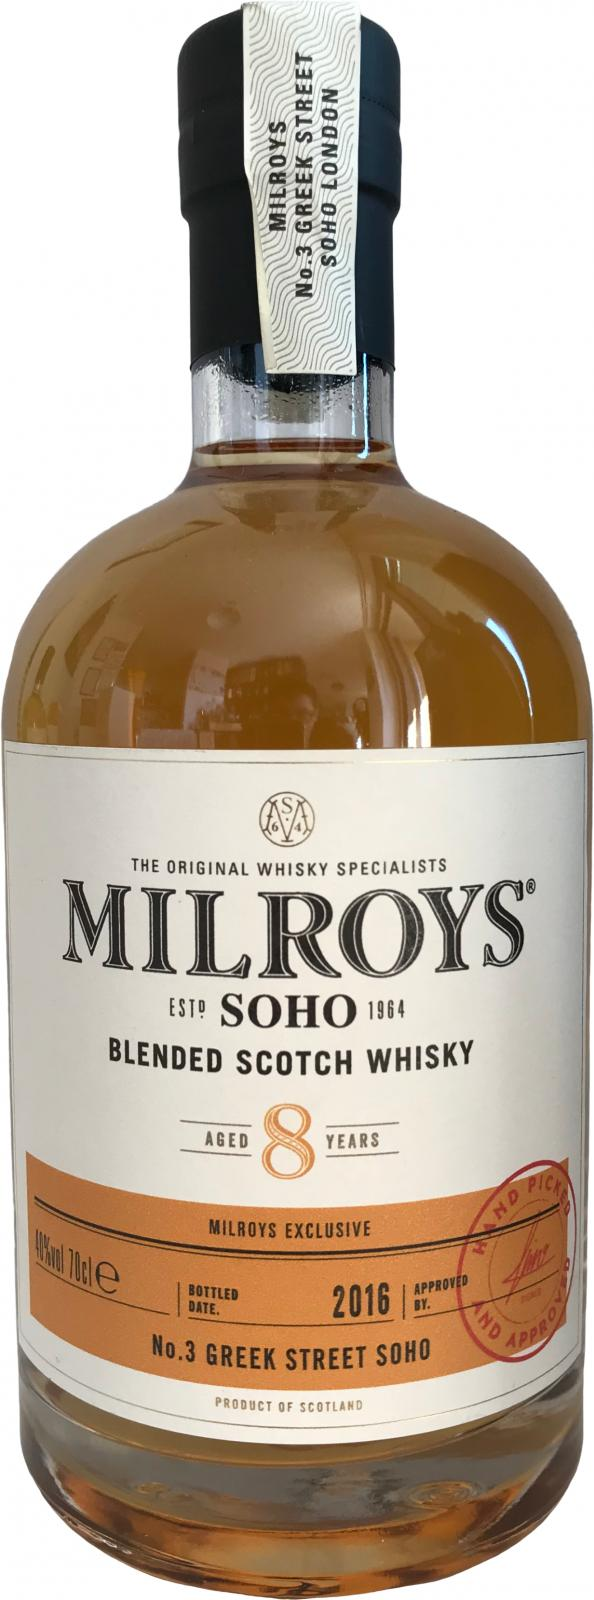 Blended Scotch Whisky 08-year-old Soh